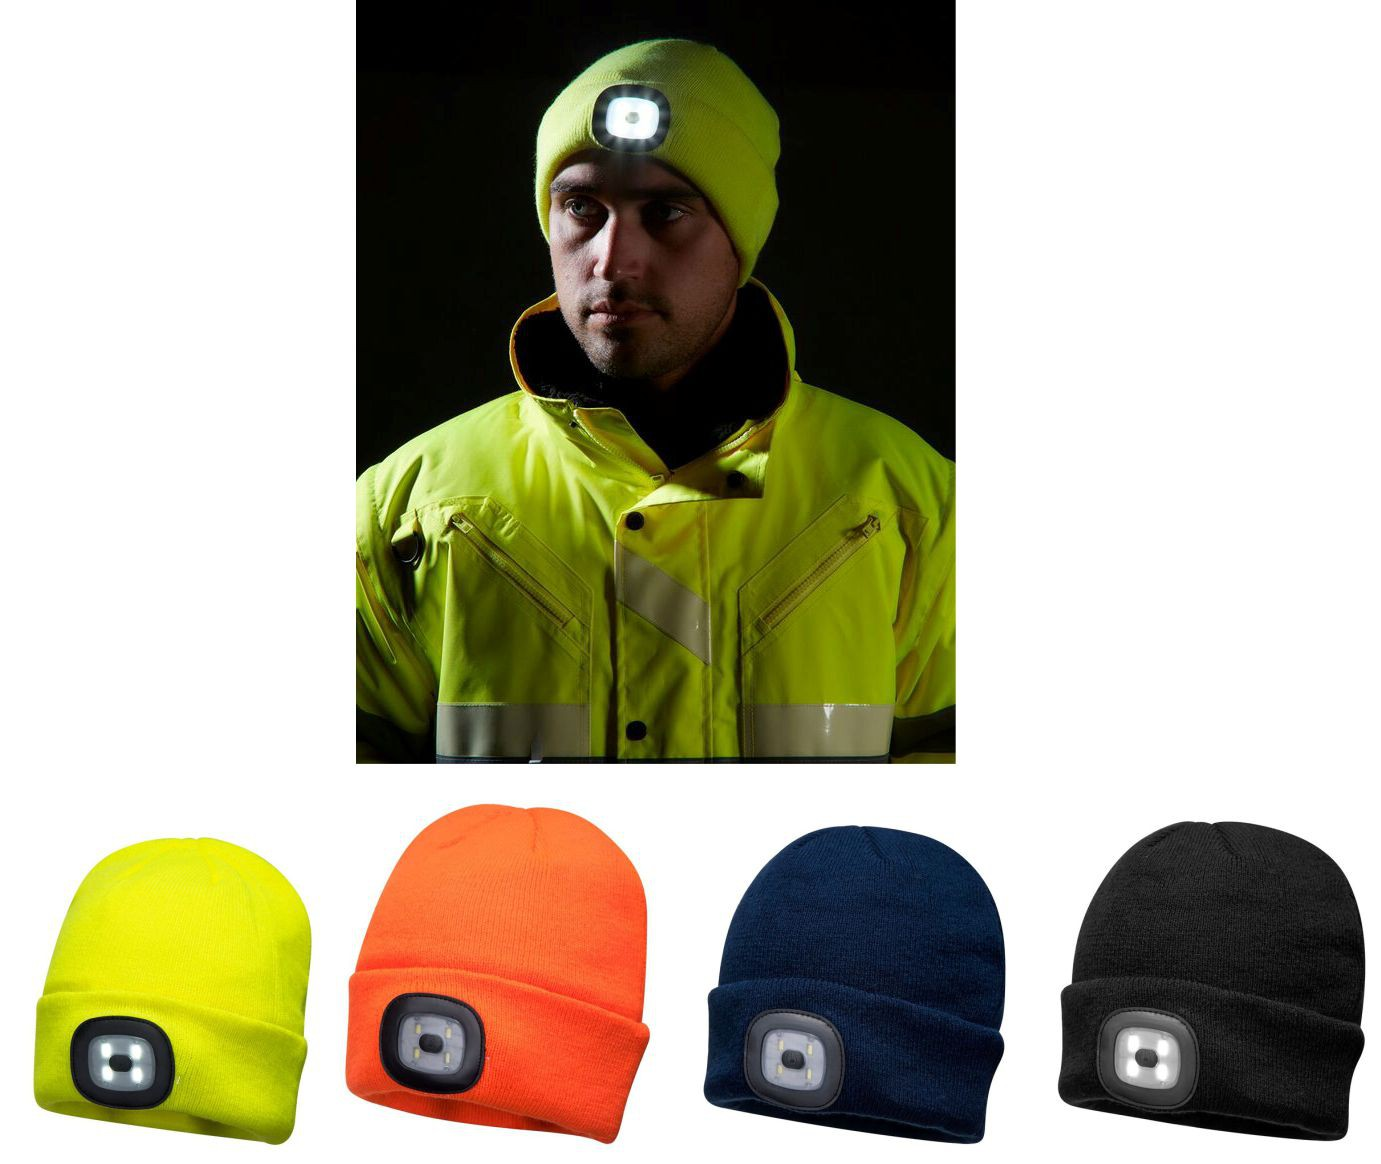 BEANIE HAT ORANGE WITH LED HEAD LIGHT (USB RECHARGEABLE) B029